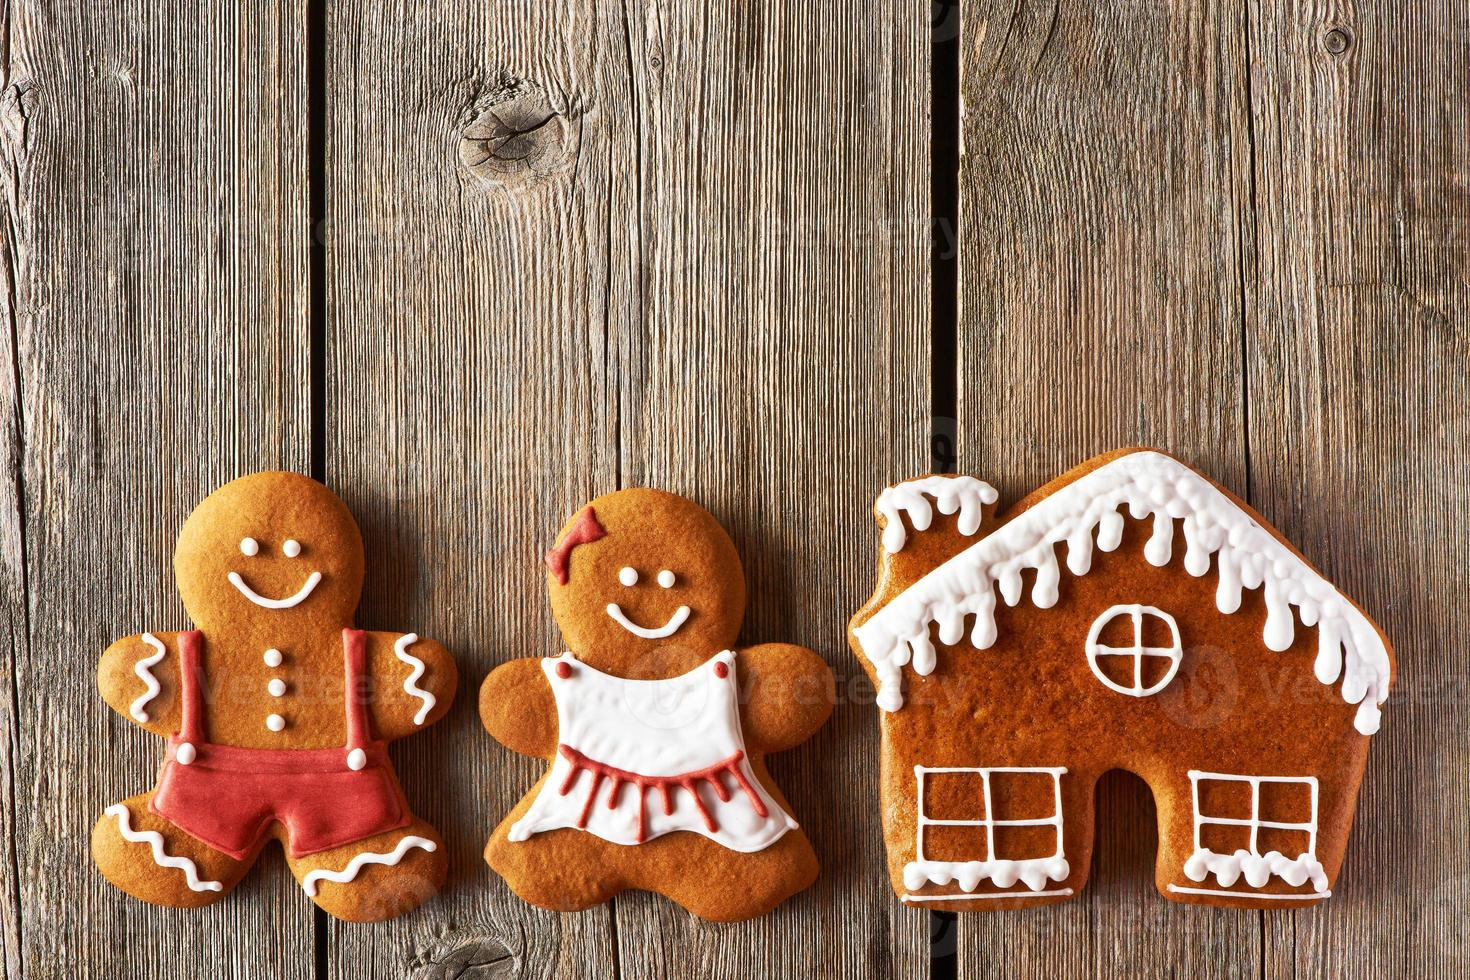 Christmas gingerbread couple and house cookies photo